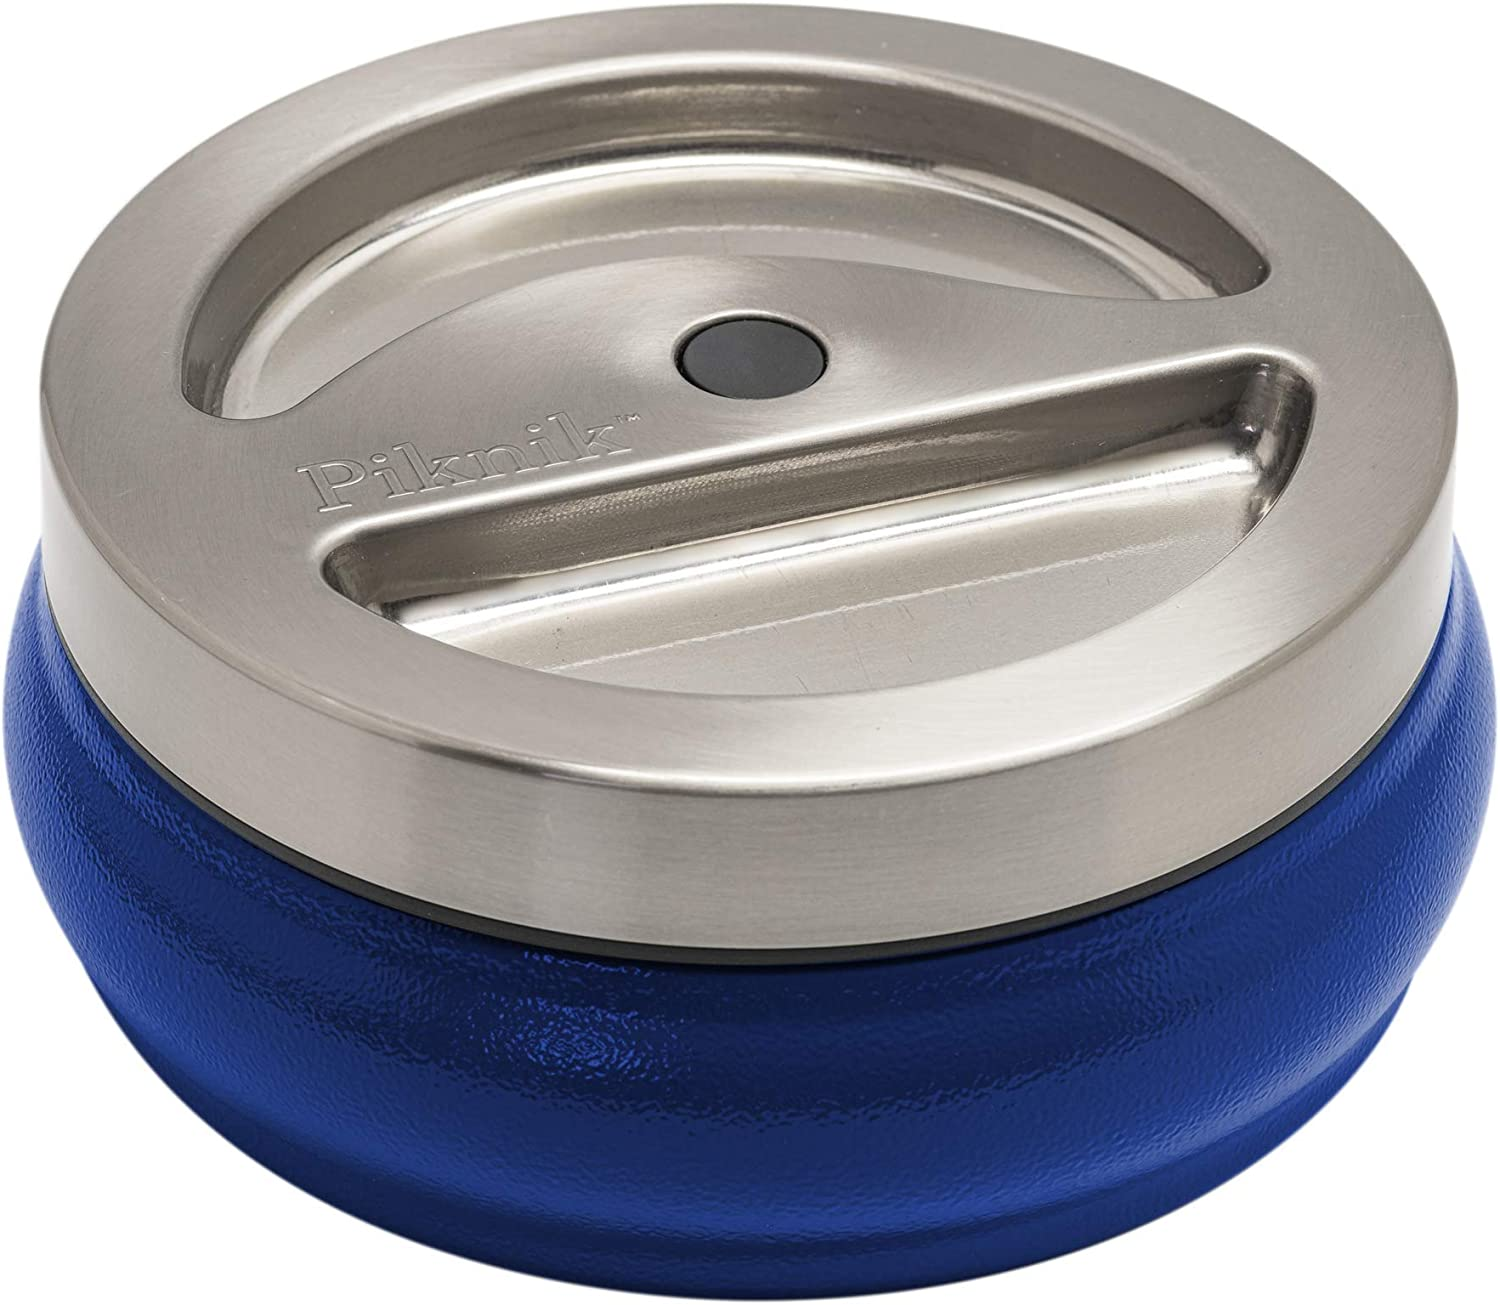 Piknik 28 oz Thermally Insulated Food Container - Stainless Steel - On The Go - Leak Proof (Blue)